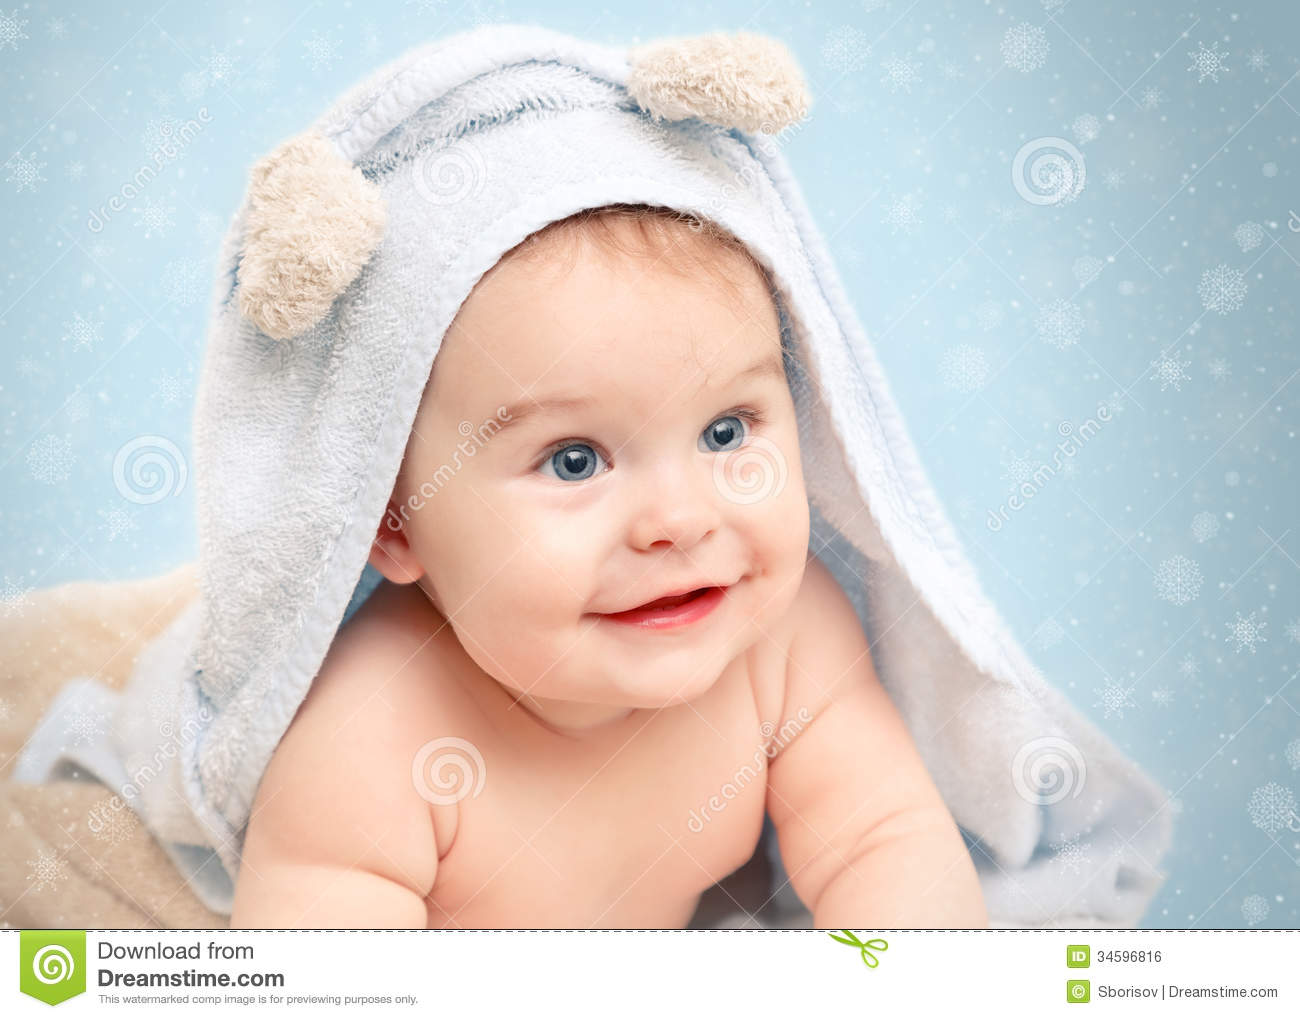 Smiling Baby Royalty Free Stock Image  Image: 34596816